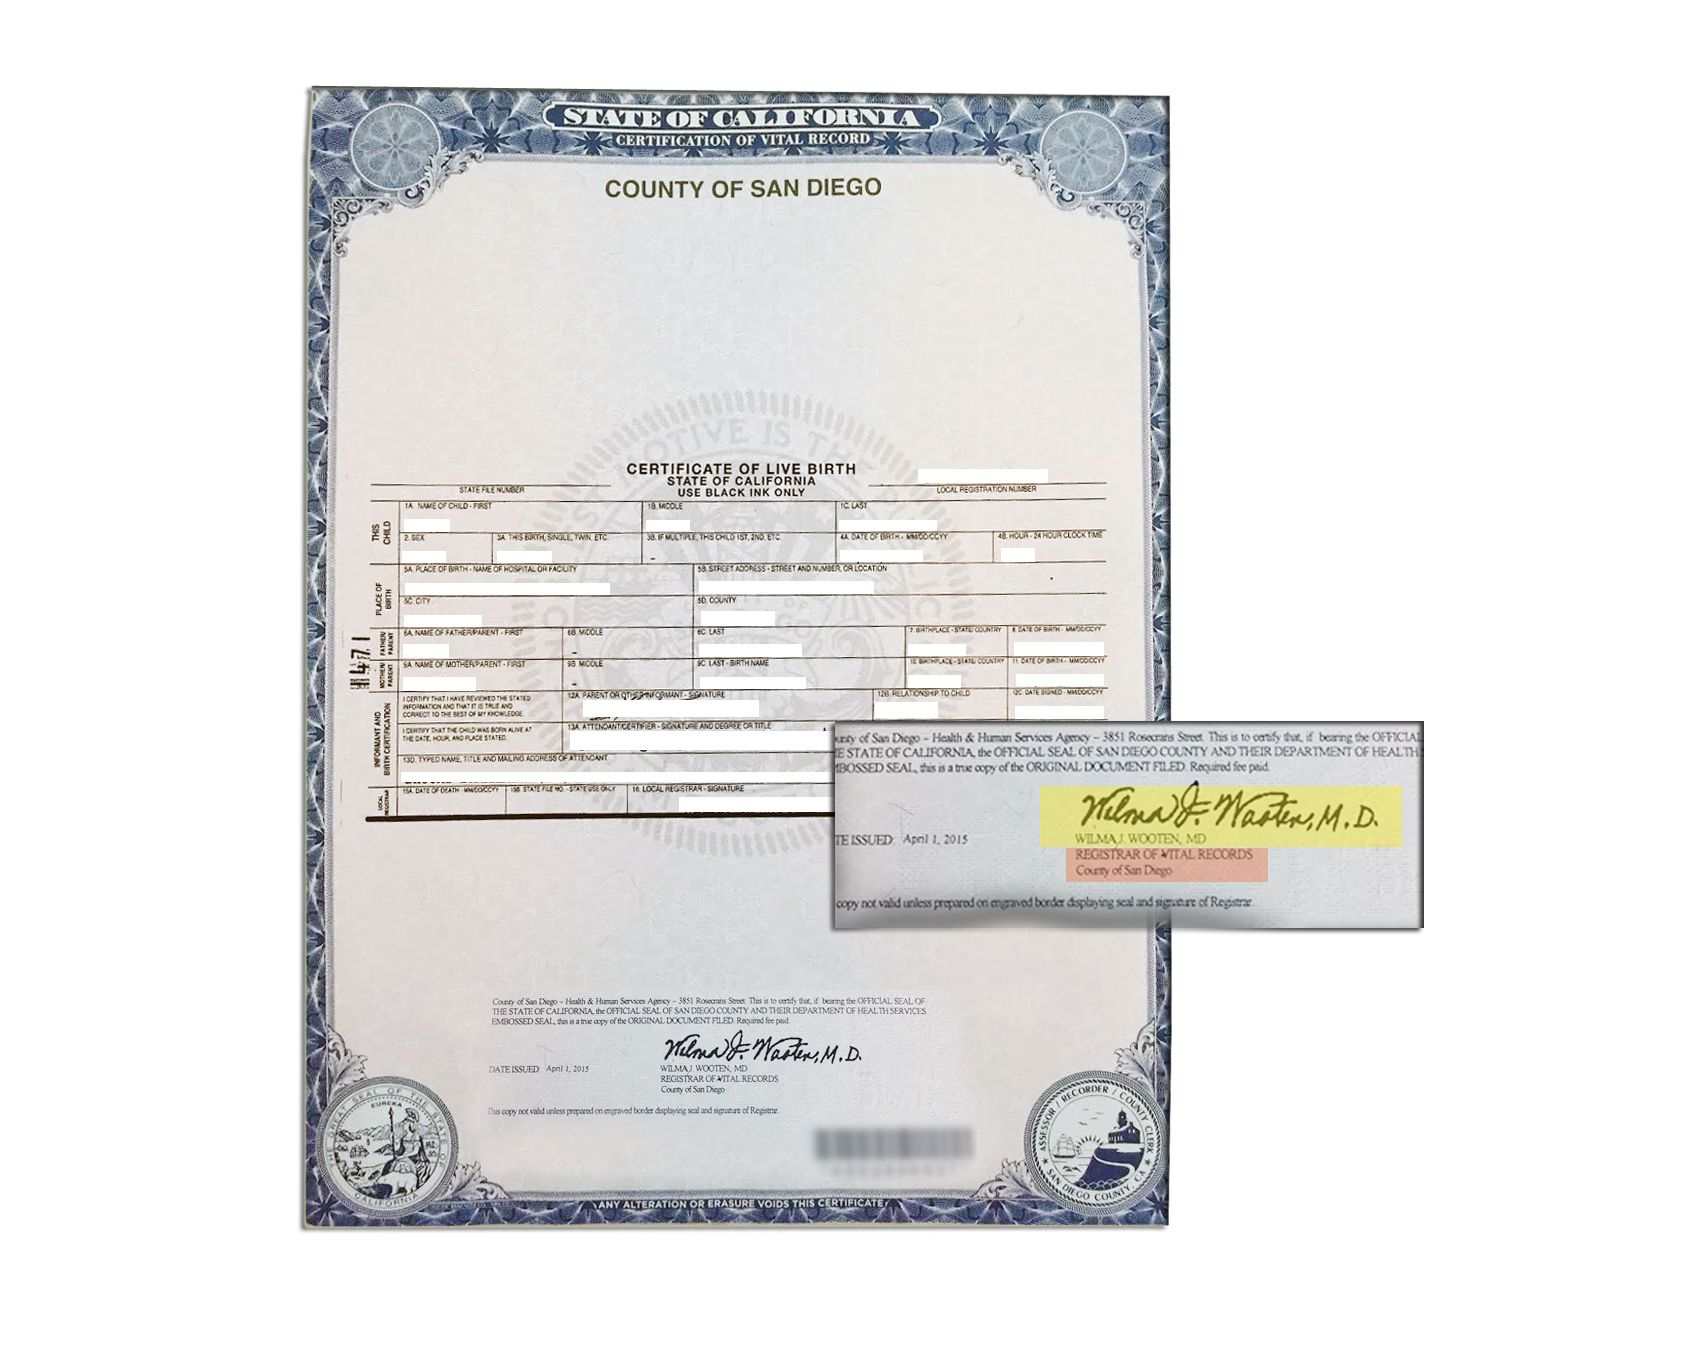 County of san diego certificate of birth signed by wilma j